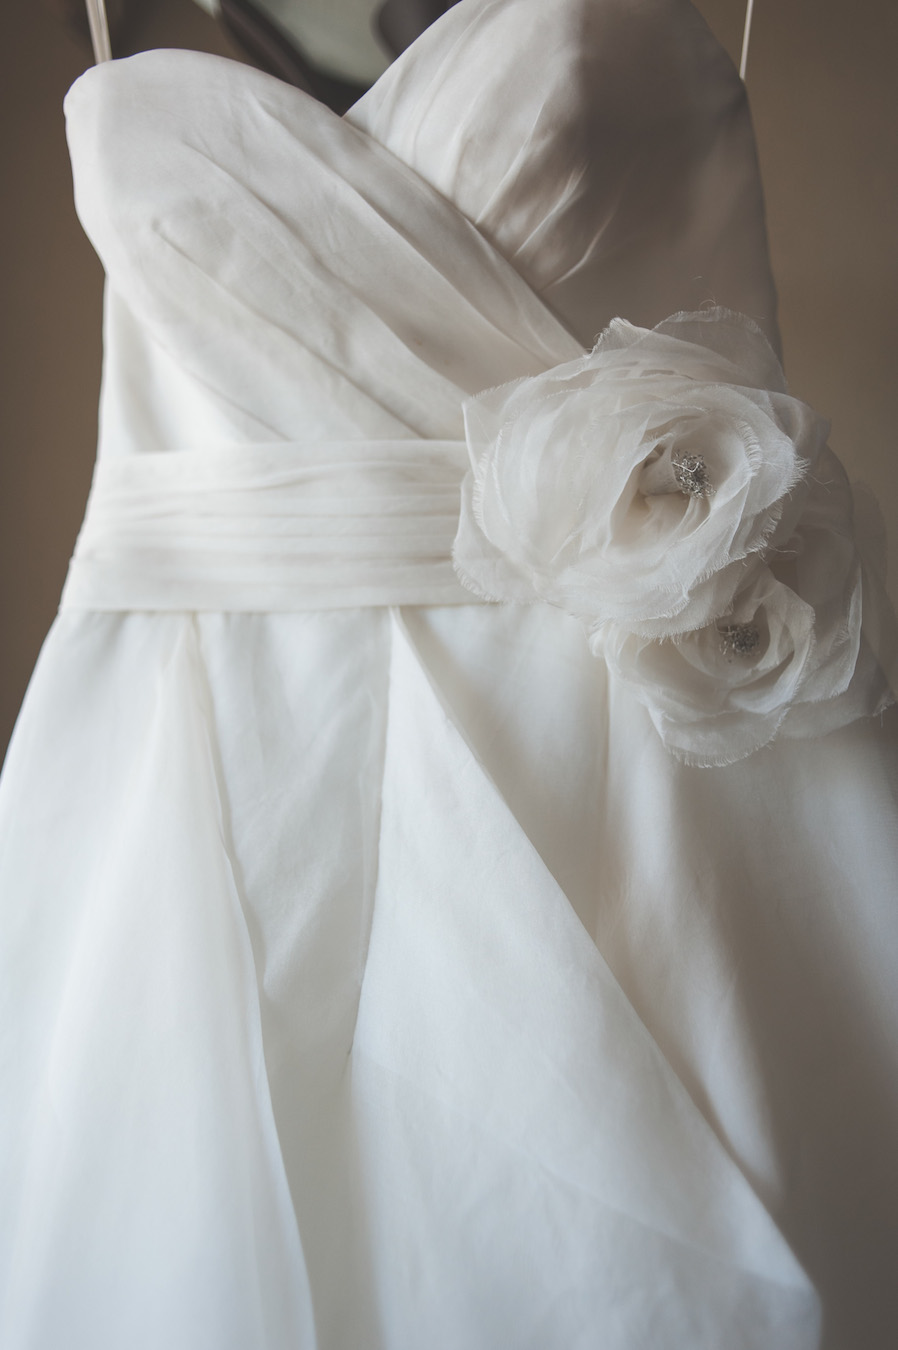 20130803134057_dress_white_wedding.jpg